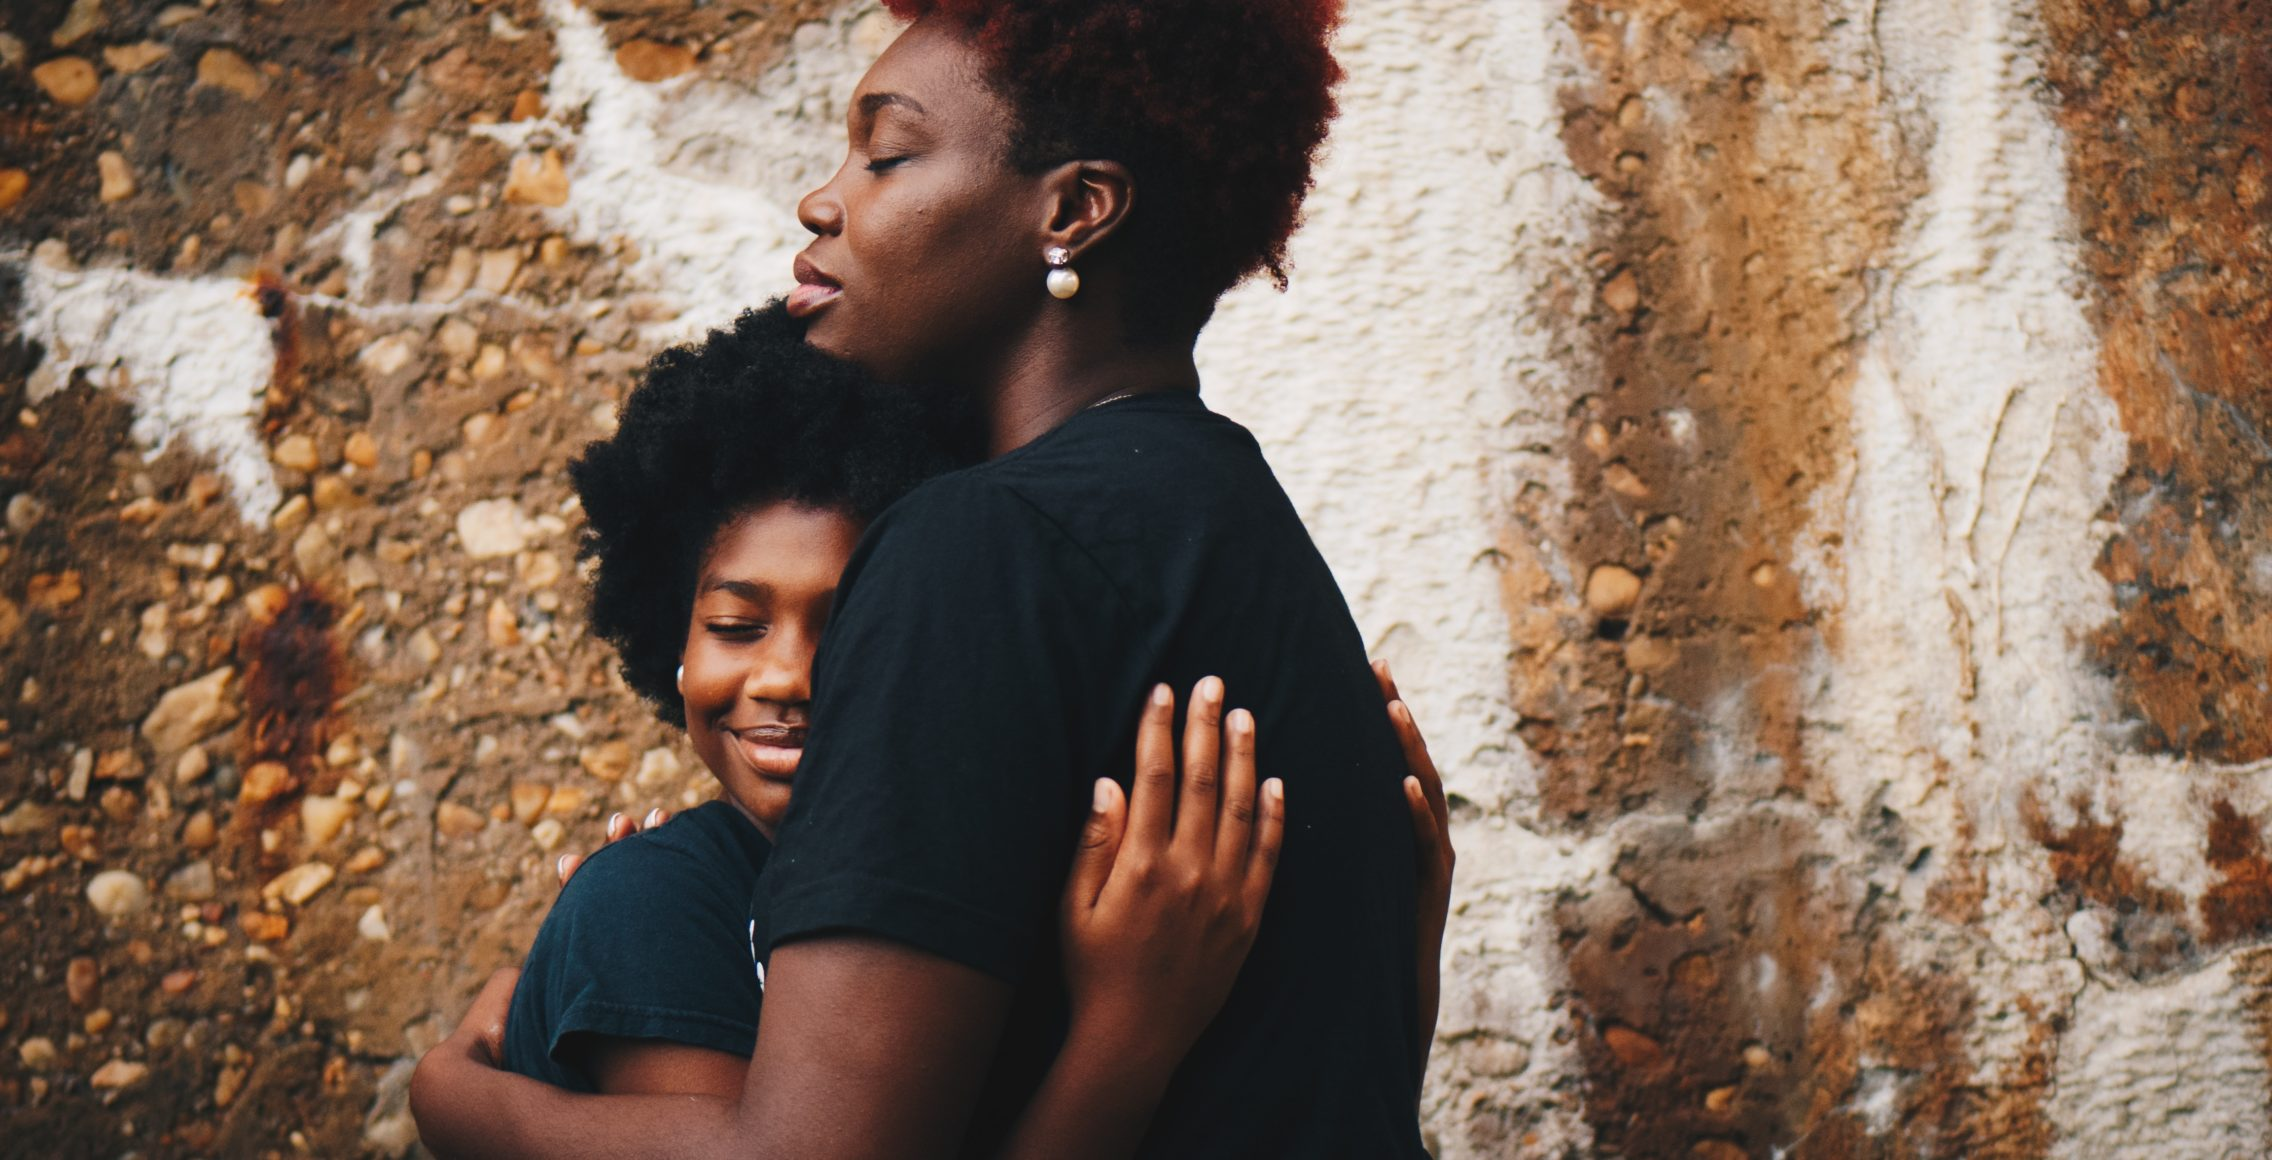 Two women in black shirts hugging